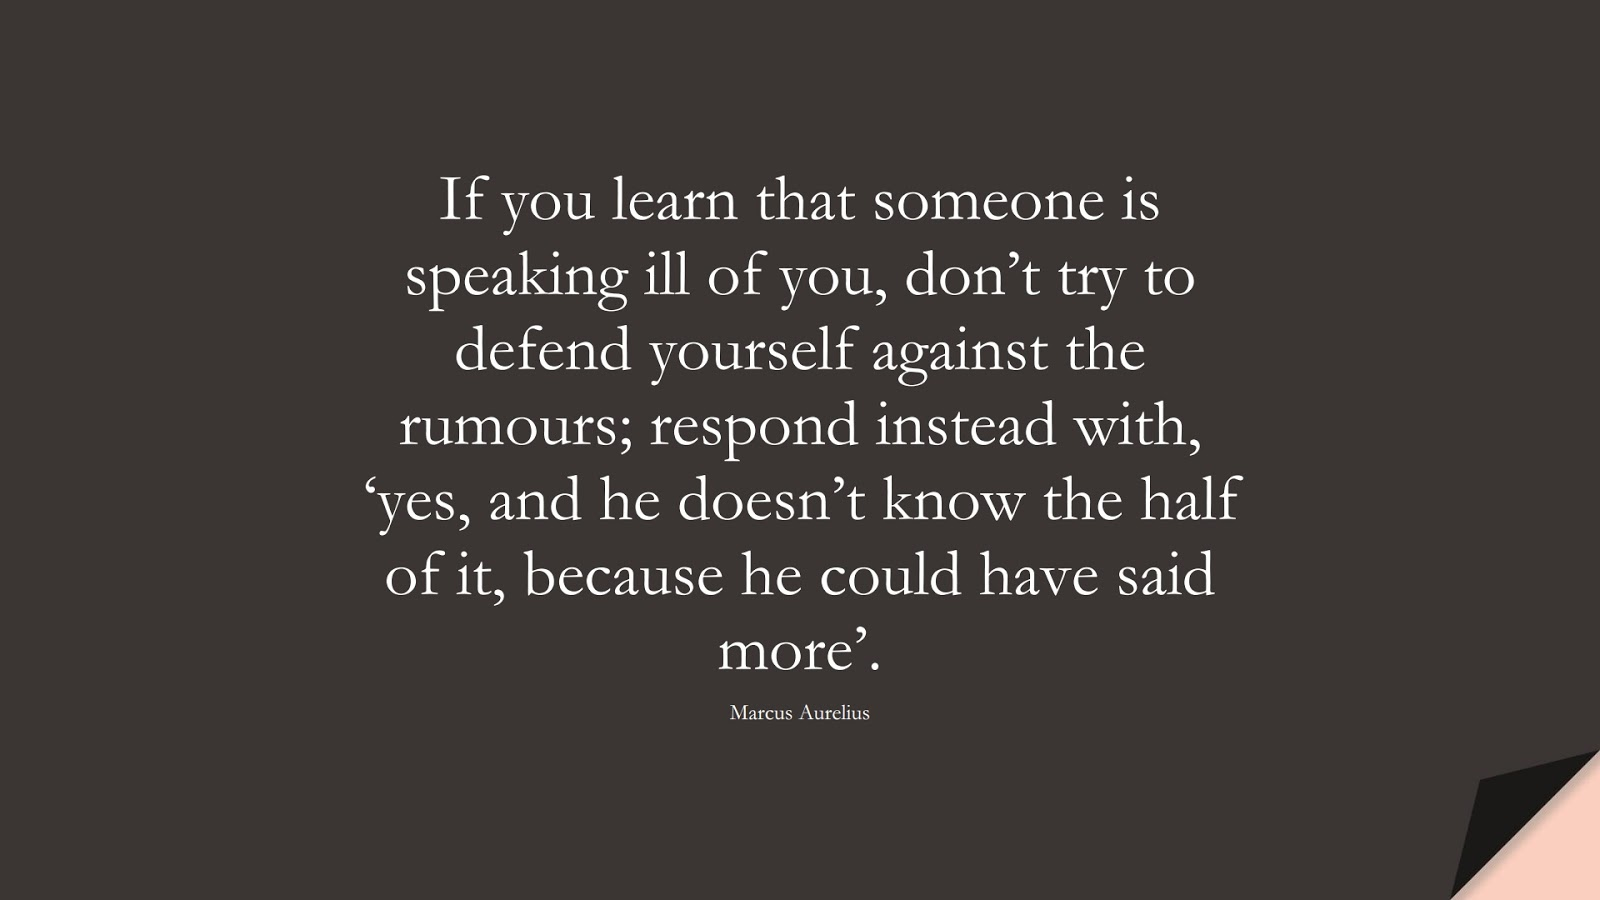 If you learn that someone is speaking ill of you, don't try to defend yourself against the rumours; respond instead with, 'yes, and he doesn't know the half of it, because he could have said more'. (Marcus Aurelius);  #MarcusAureliusQuotes